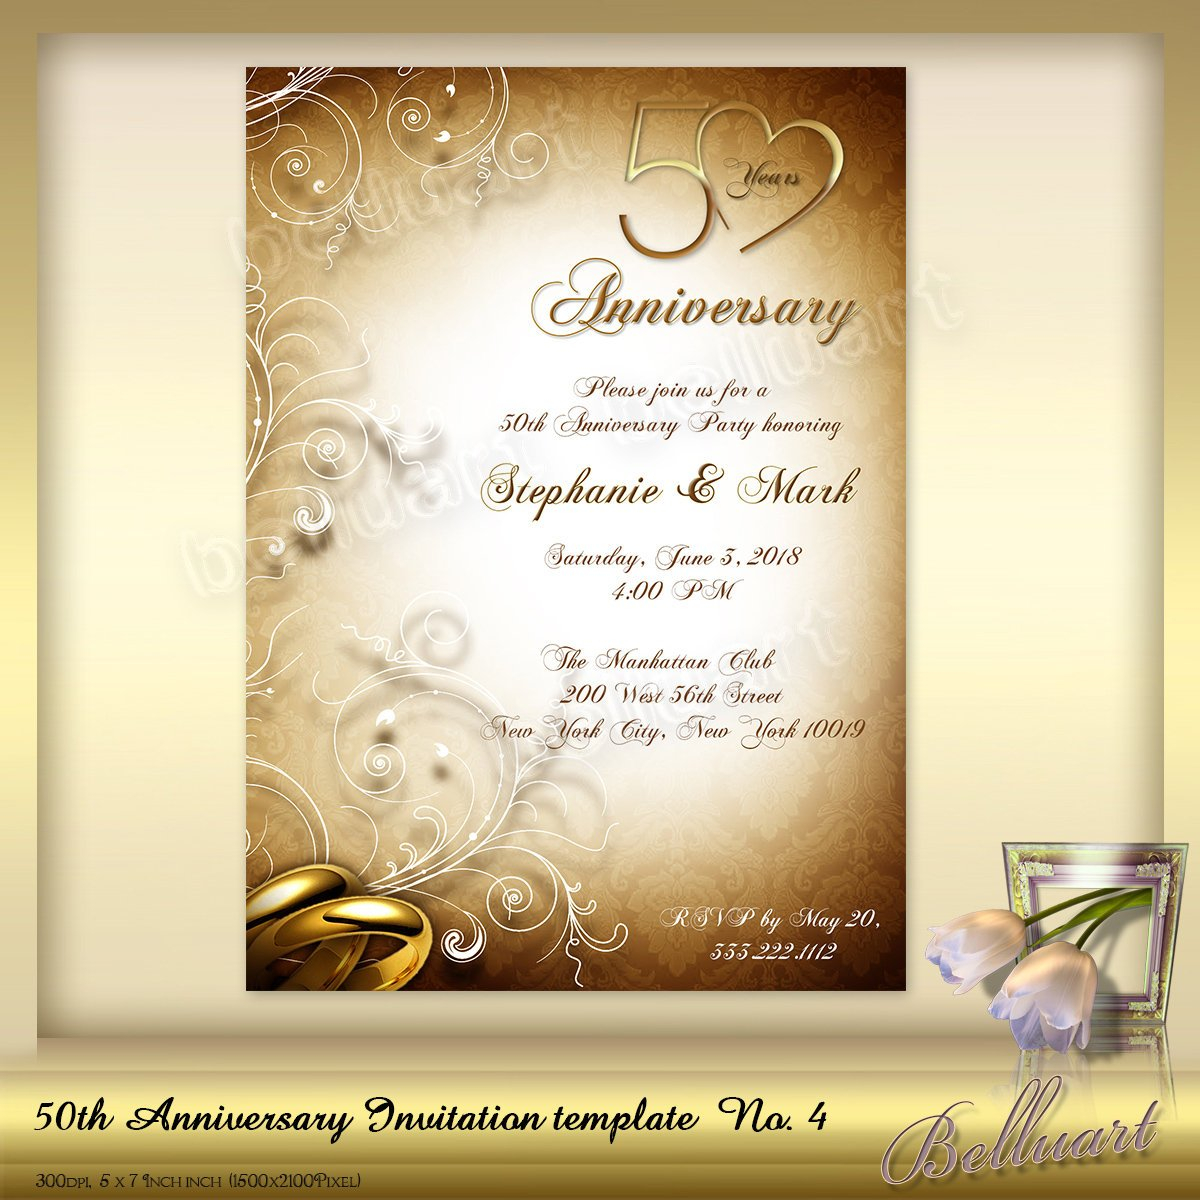 50th Wedding Anniversary Invitations 50th Anniversary Invitation Template No4 Golden Wedding Etsy